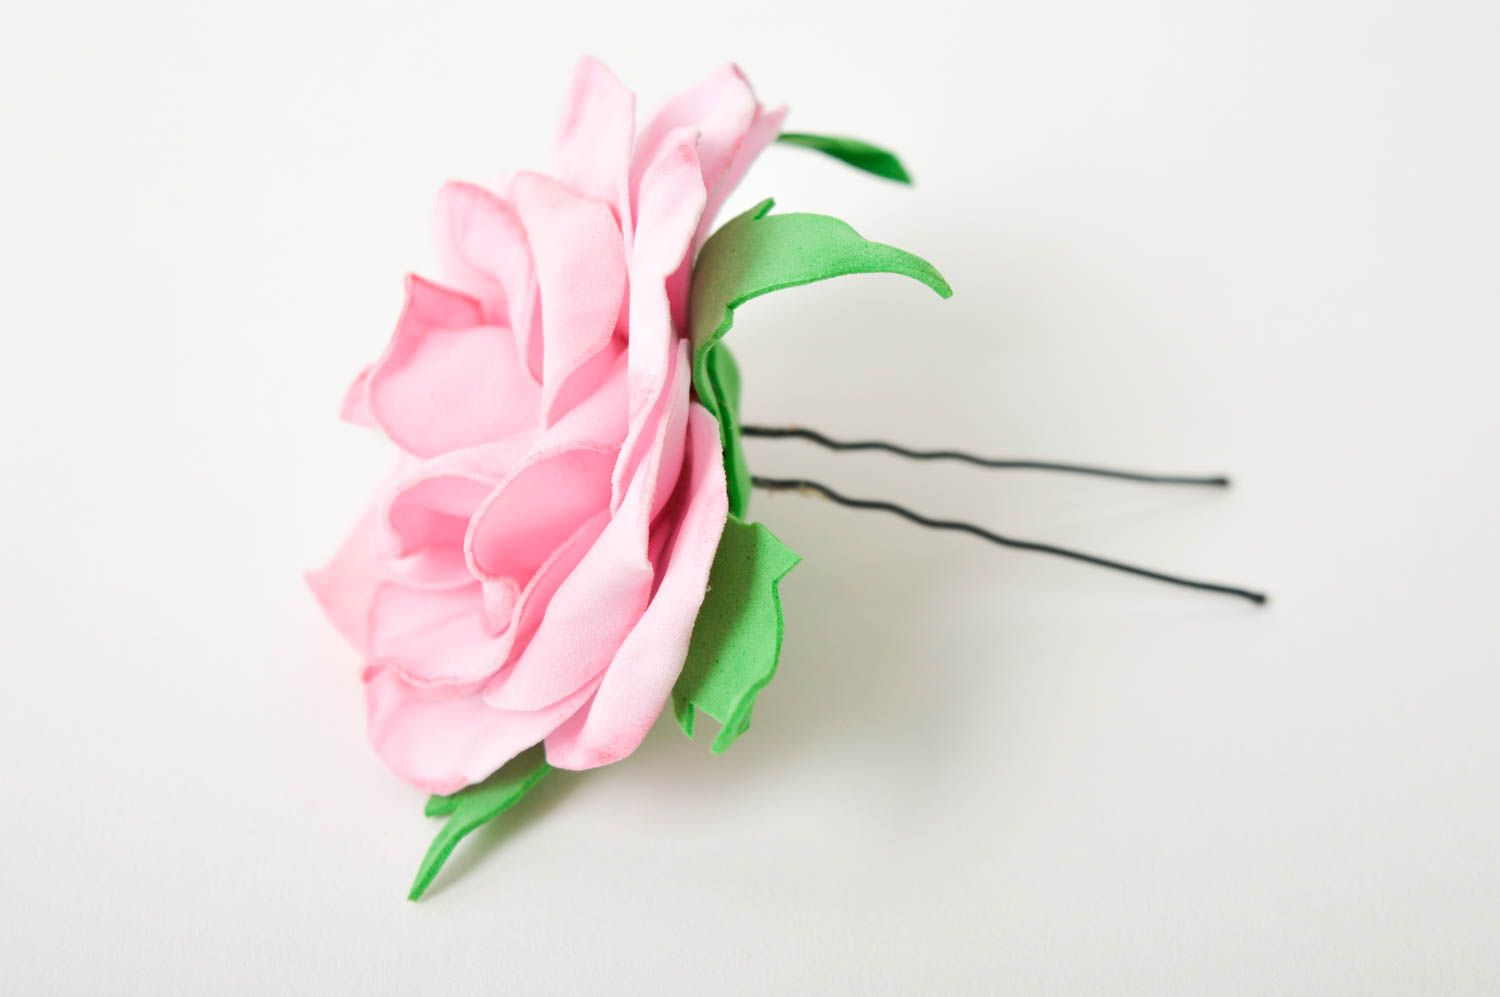 Handmade hairpin with flower foamiran hairpin hair accessories for women photo 4